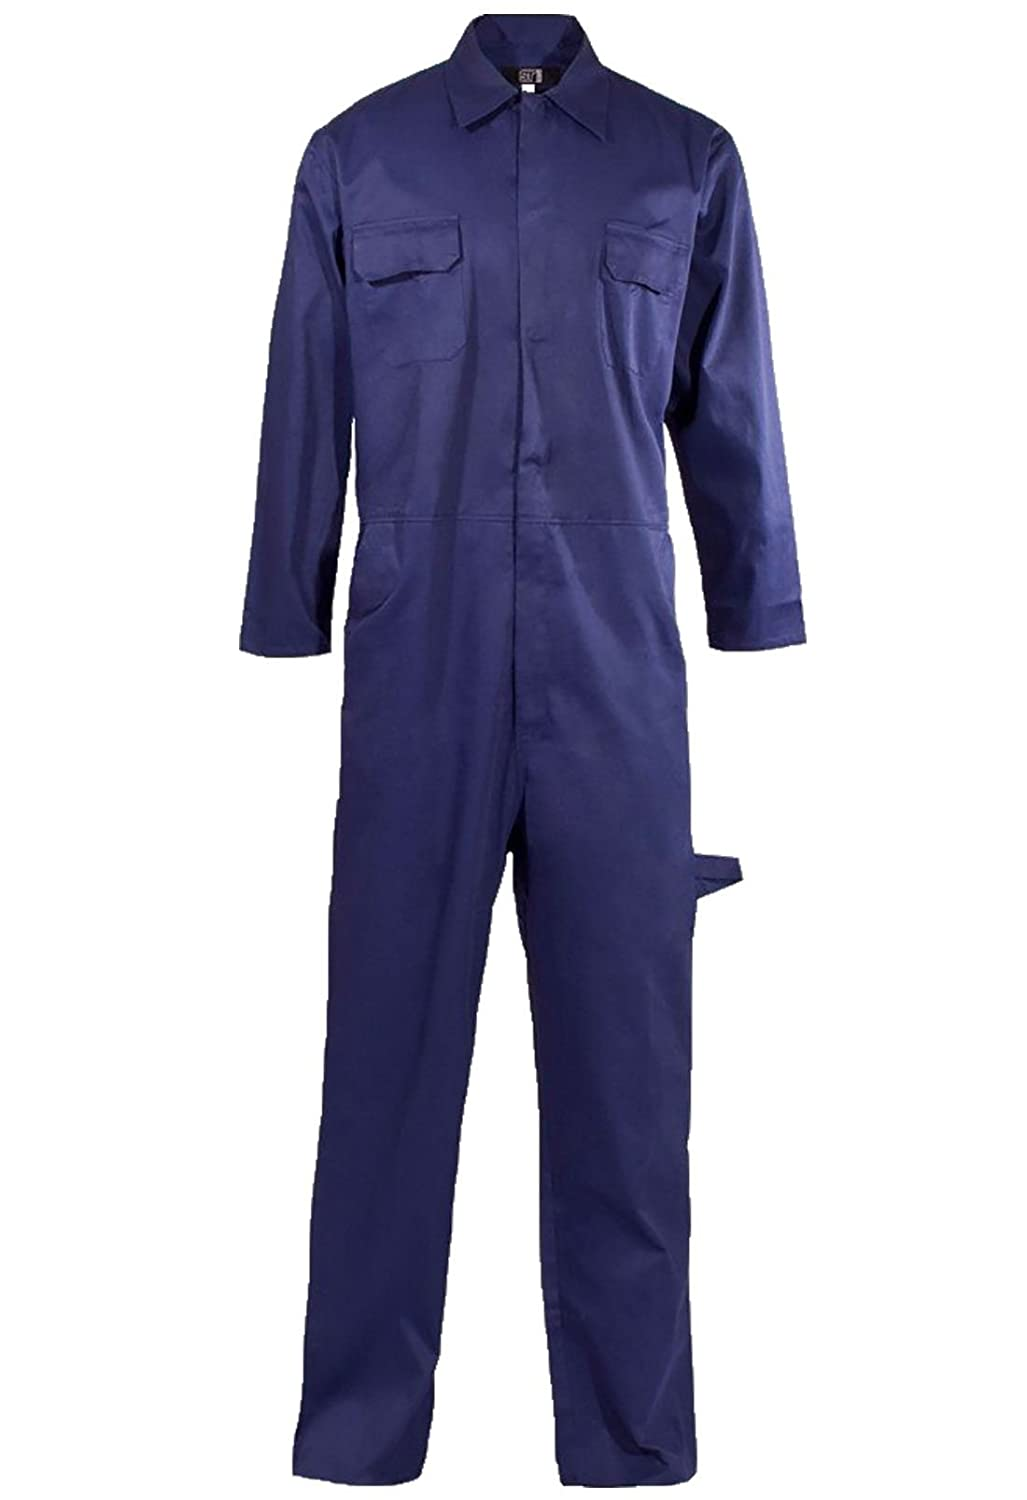 DIGITAL SPOT Adults Work Wear Mechanic Coverall Boilersuit Mens Long Sleeve Polycotton Automotive Overall